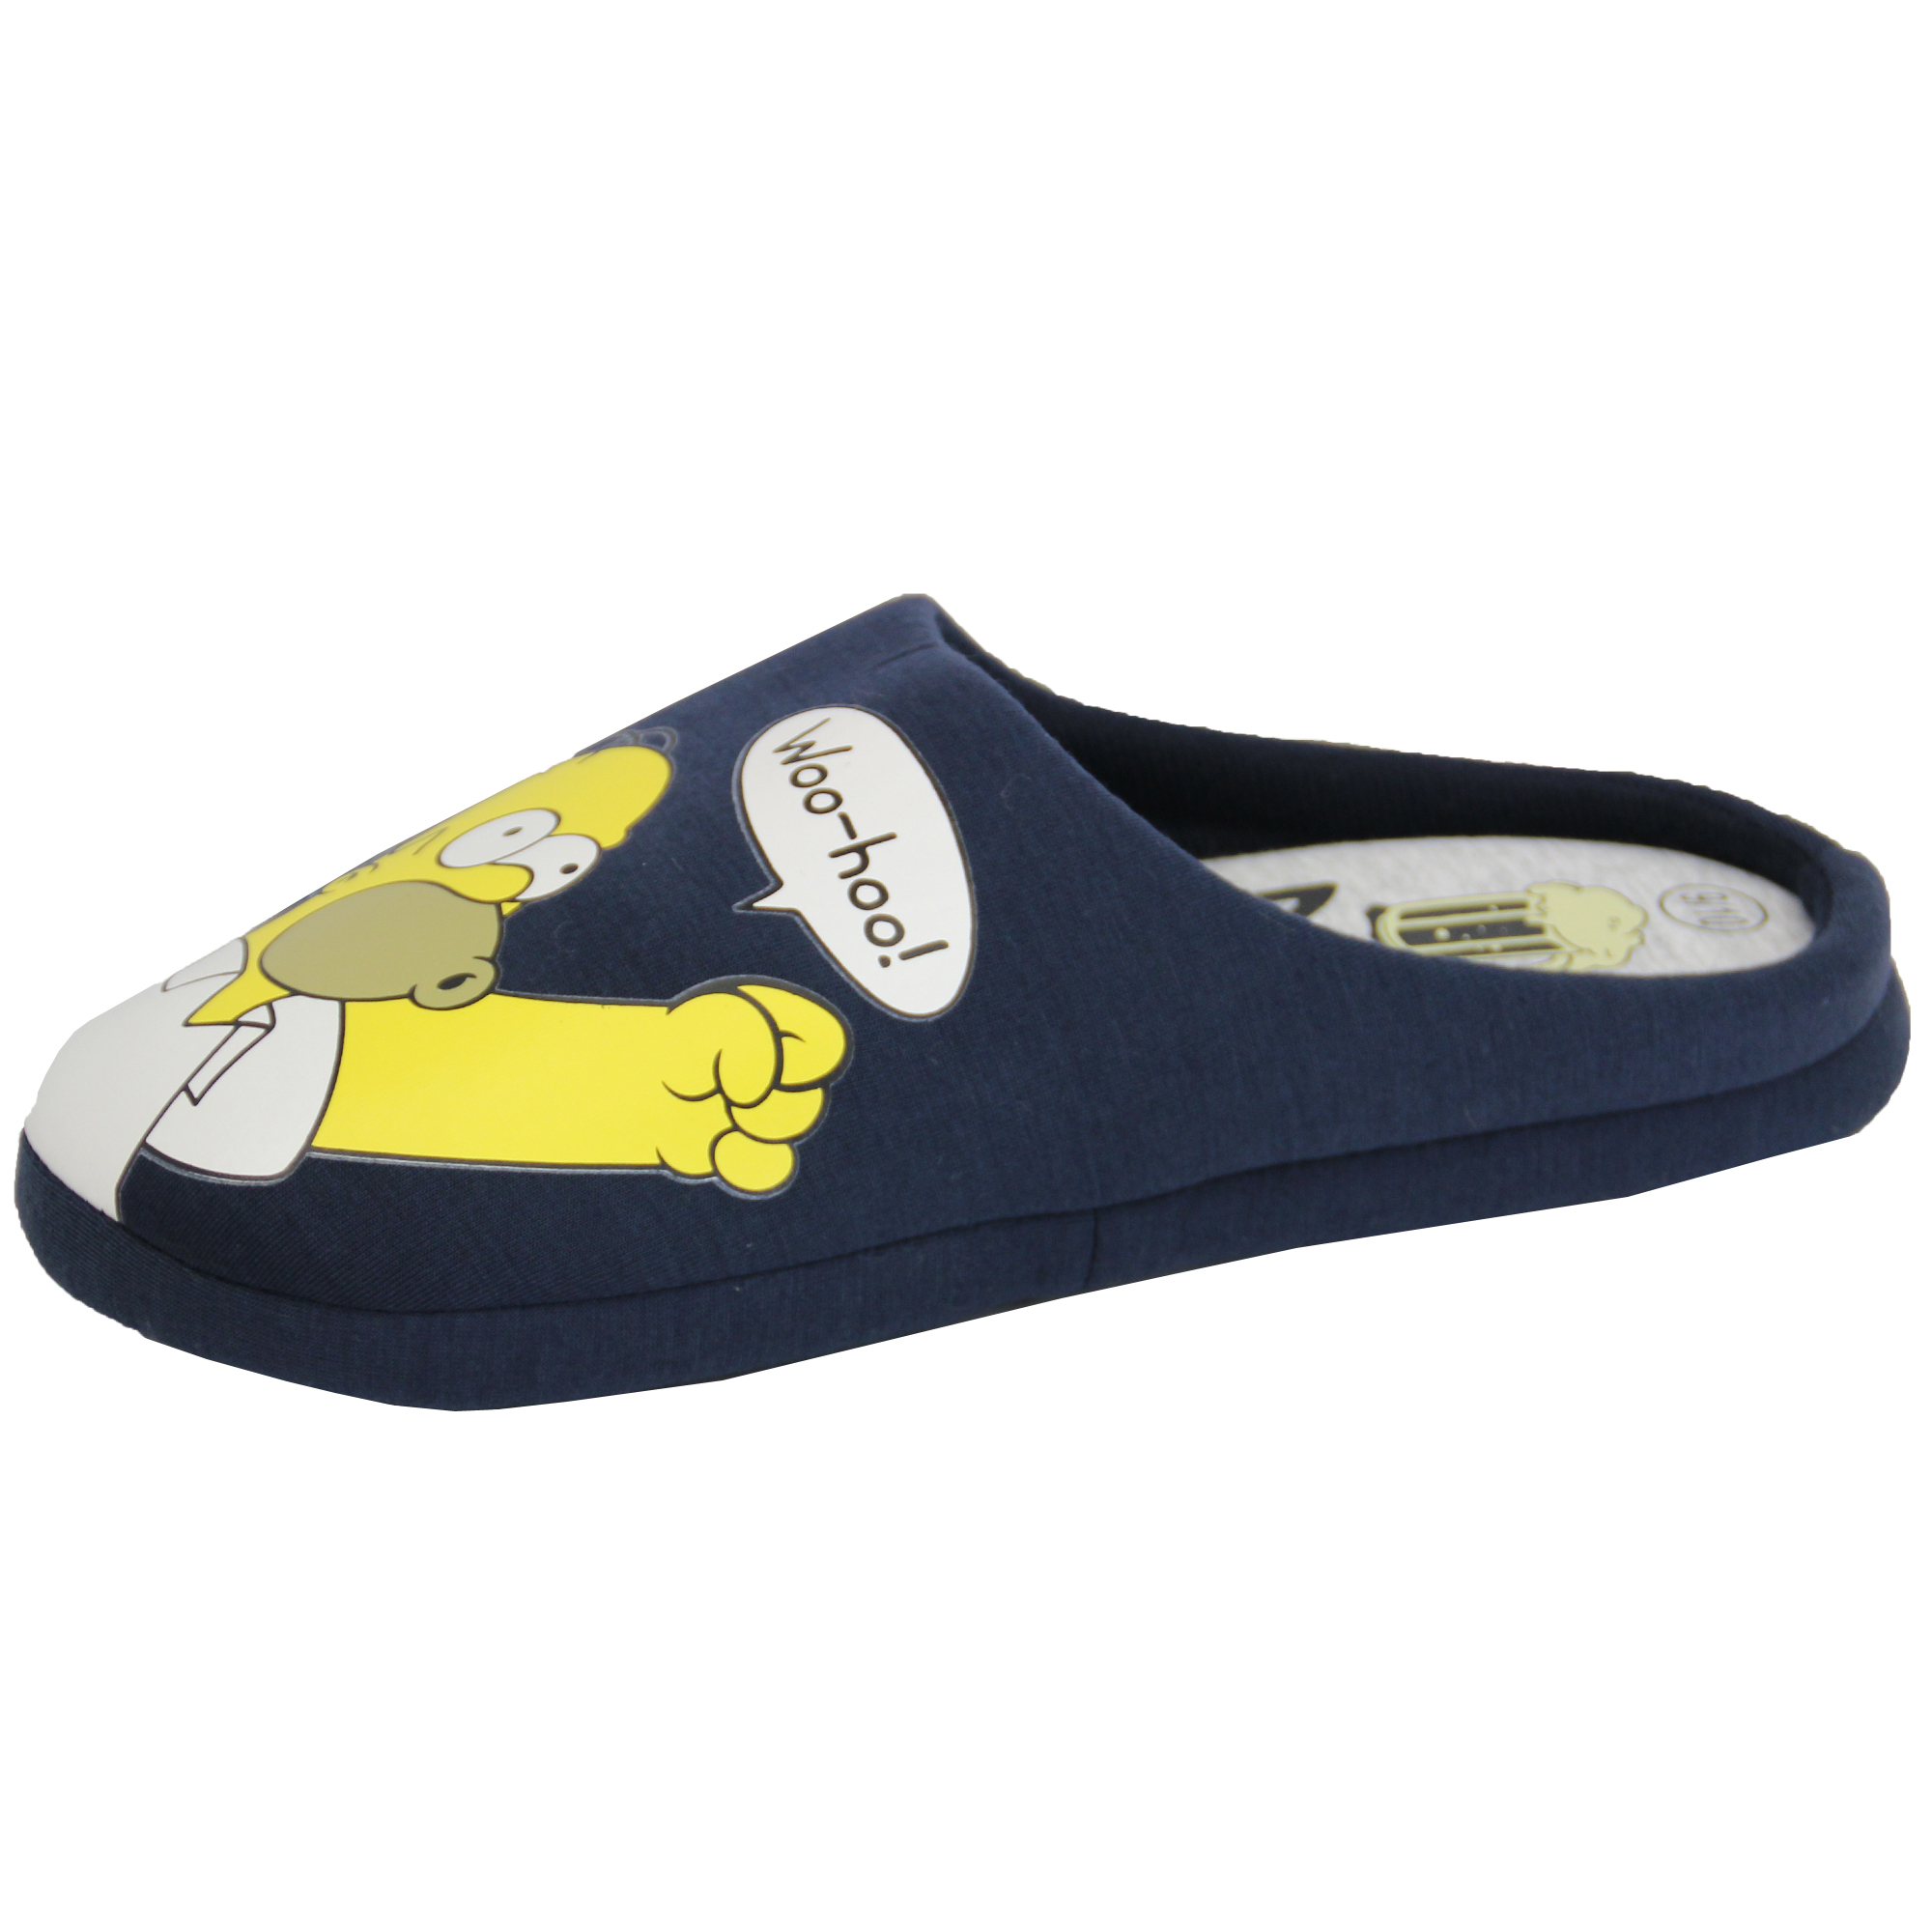 "The Simpsons Homer No Function Men's Slippers. by The Simpsons. $ $ 18 FREE Shipping on eligible orders. Product Features Awesome design inspired by the iconic Homer Simpson and Duff beer. The Simpsons Mens ""Homer Simpson No Function"" Mule Slippers. by William Lamb."